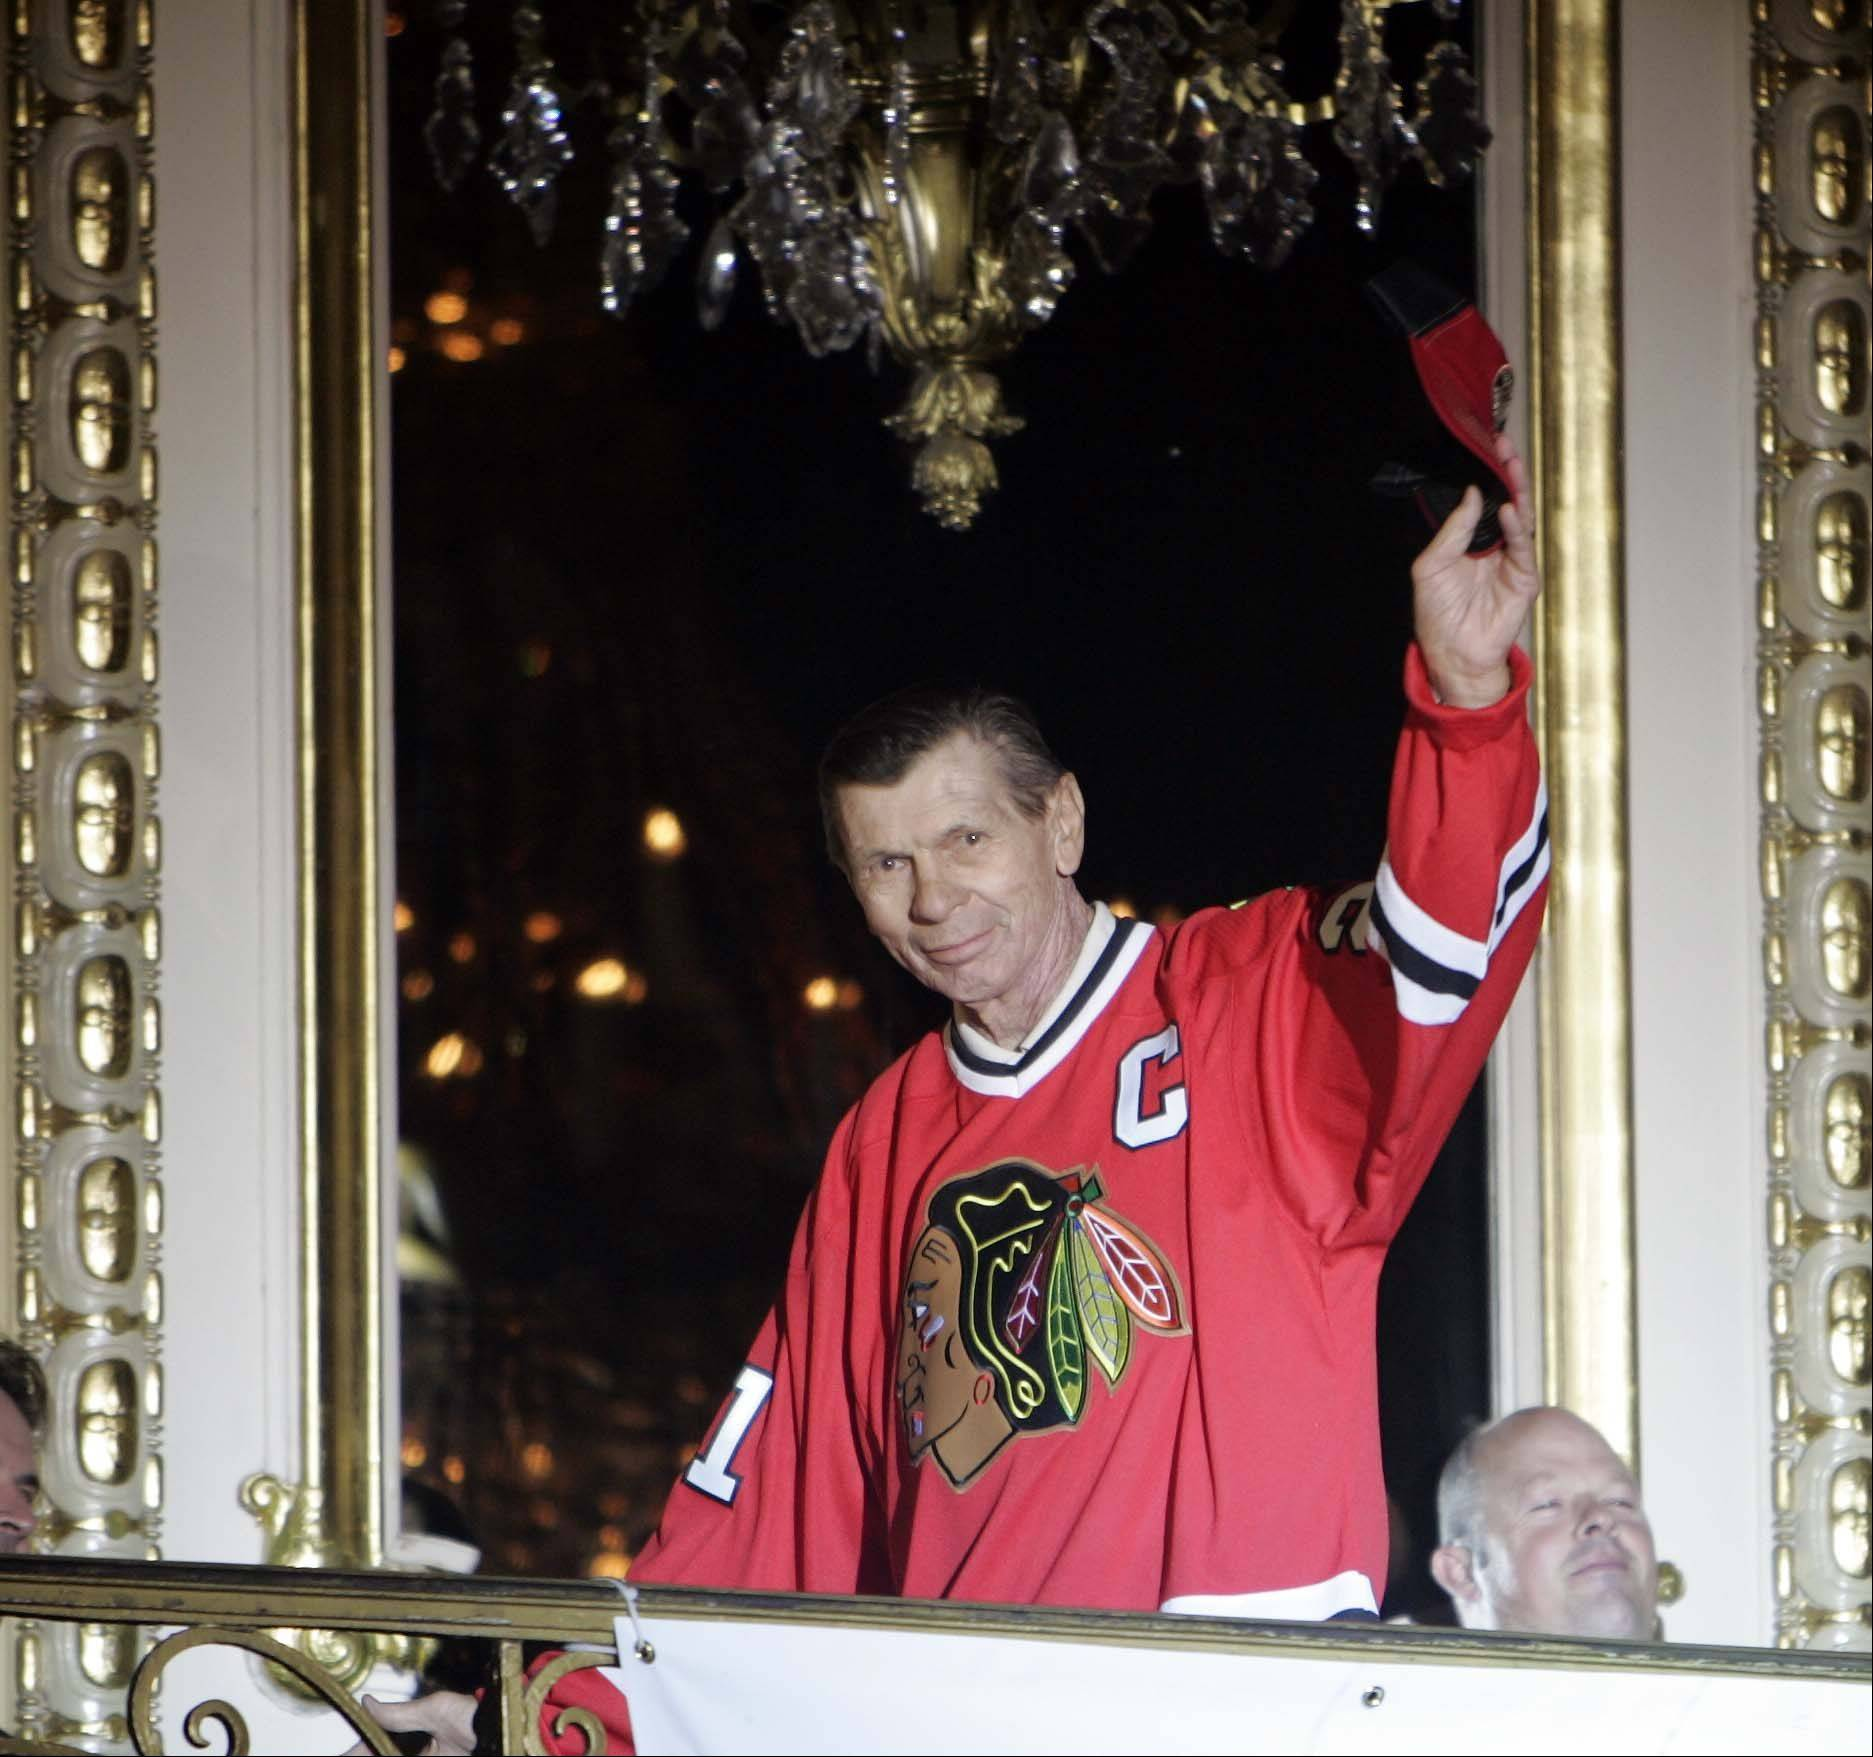 Hockey legend Stan Mikita is announced during the Annual Chicago Blackhawks fan convention.